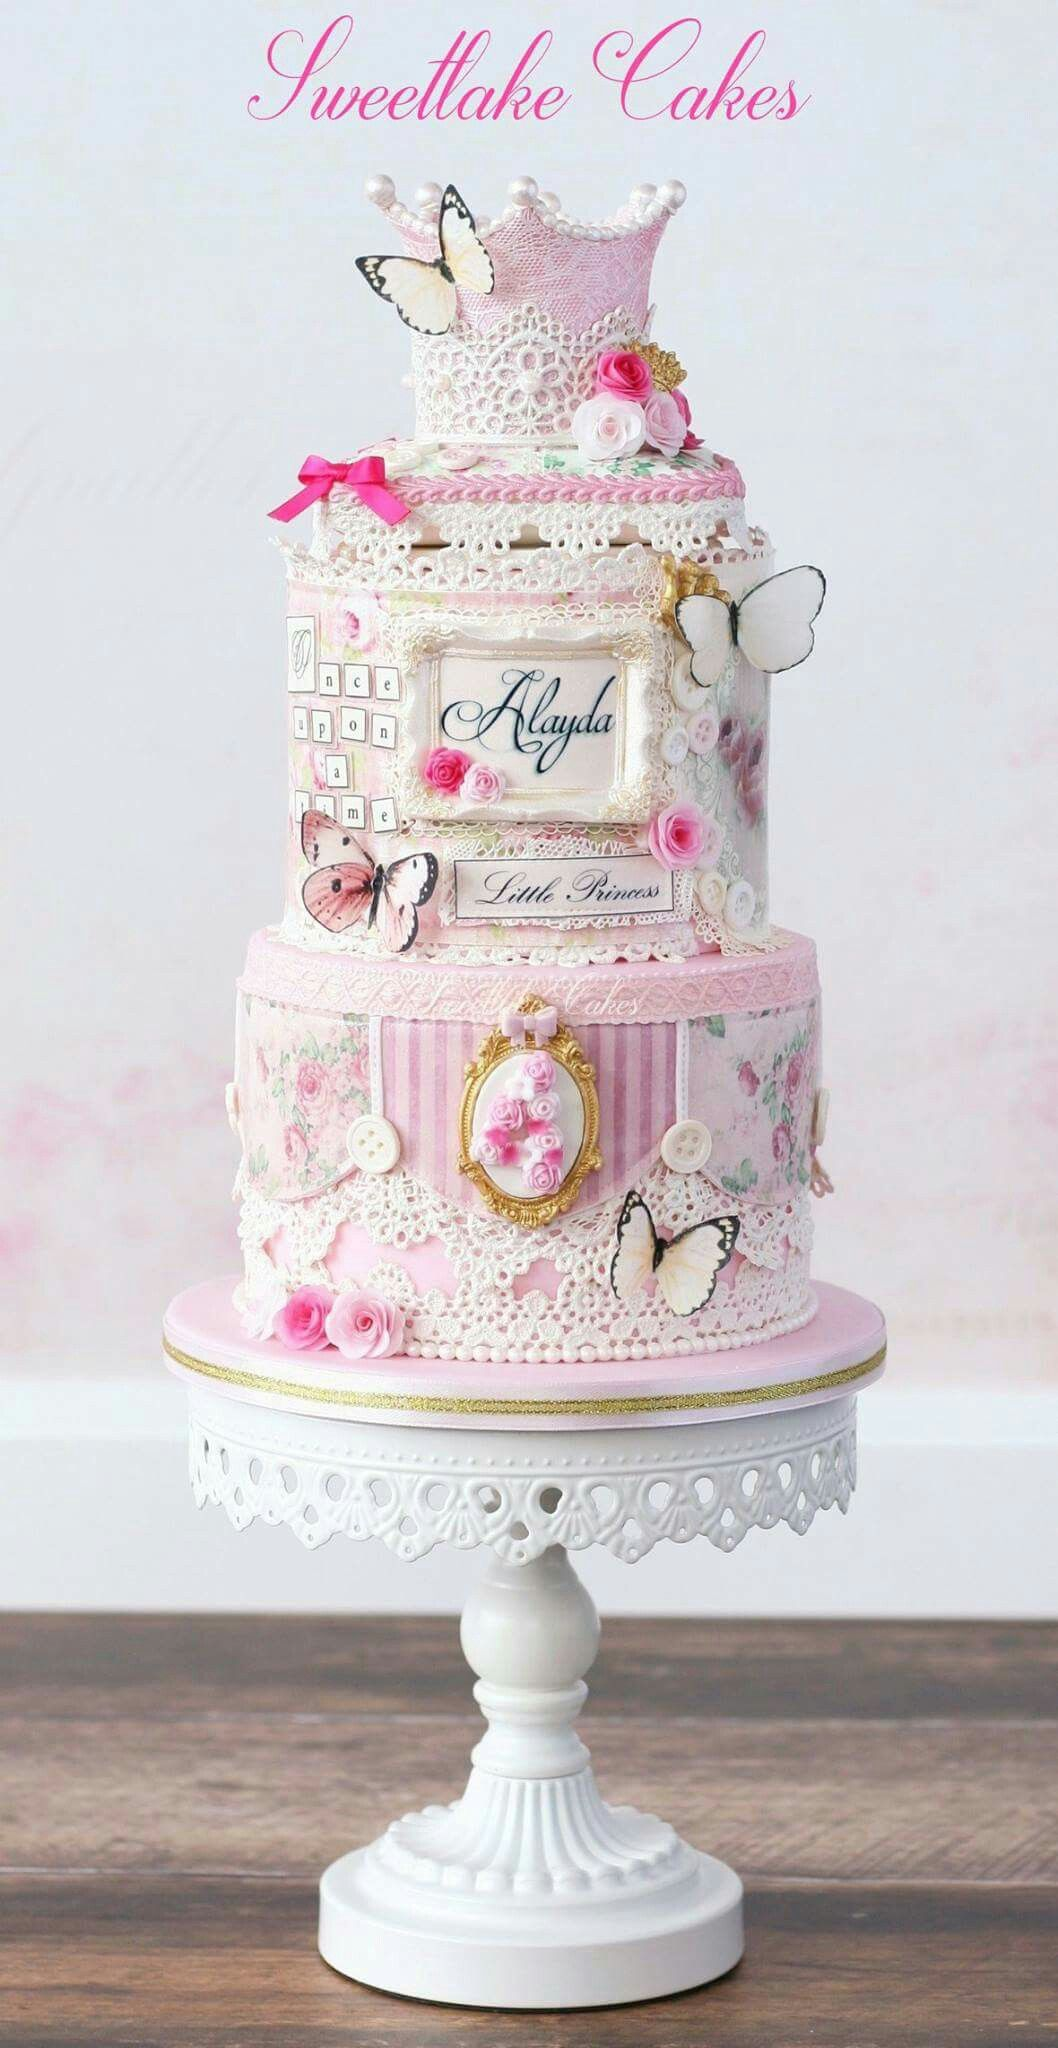 Pin by Ana Jiménez on Cakes | Pinterest | Cake, Shabby chic cakes ...